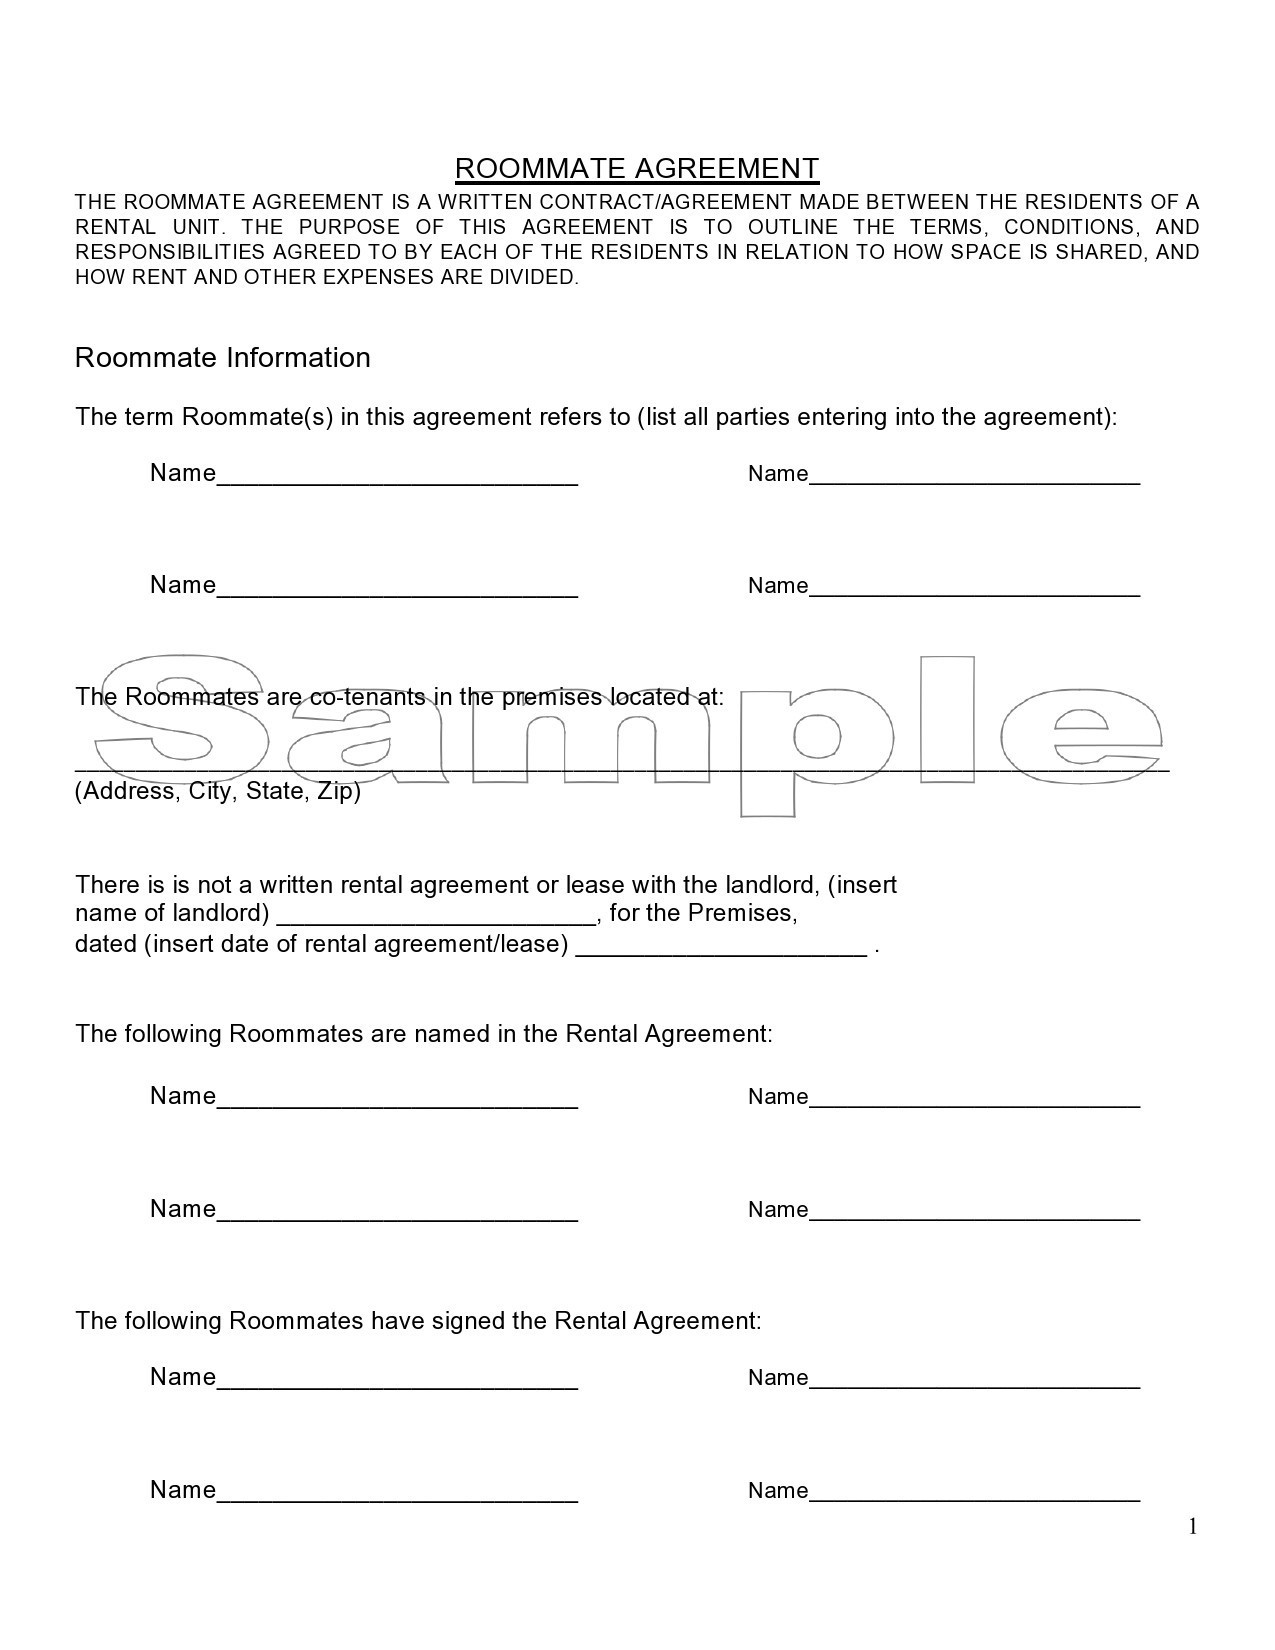 Free roommate agreement template 18